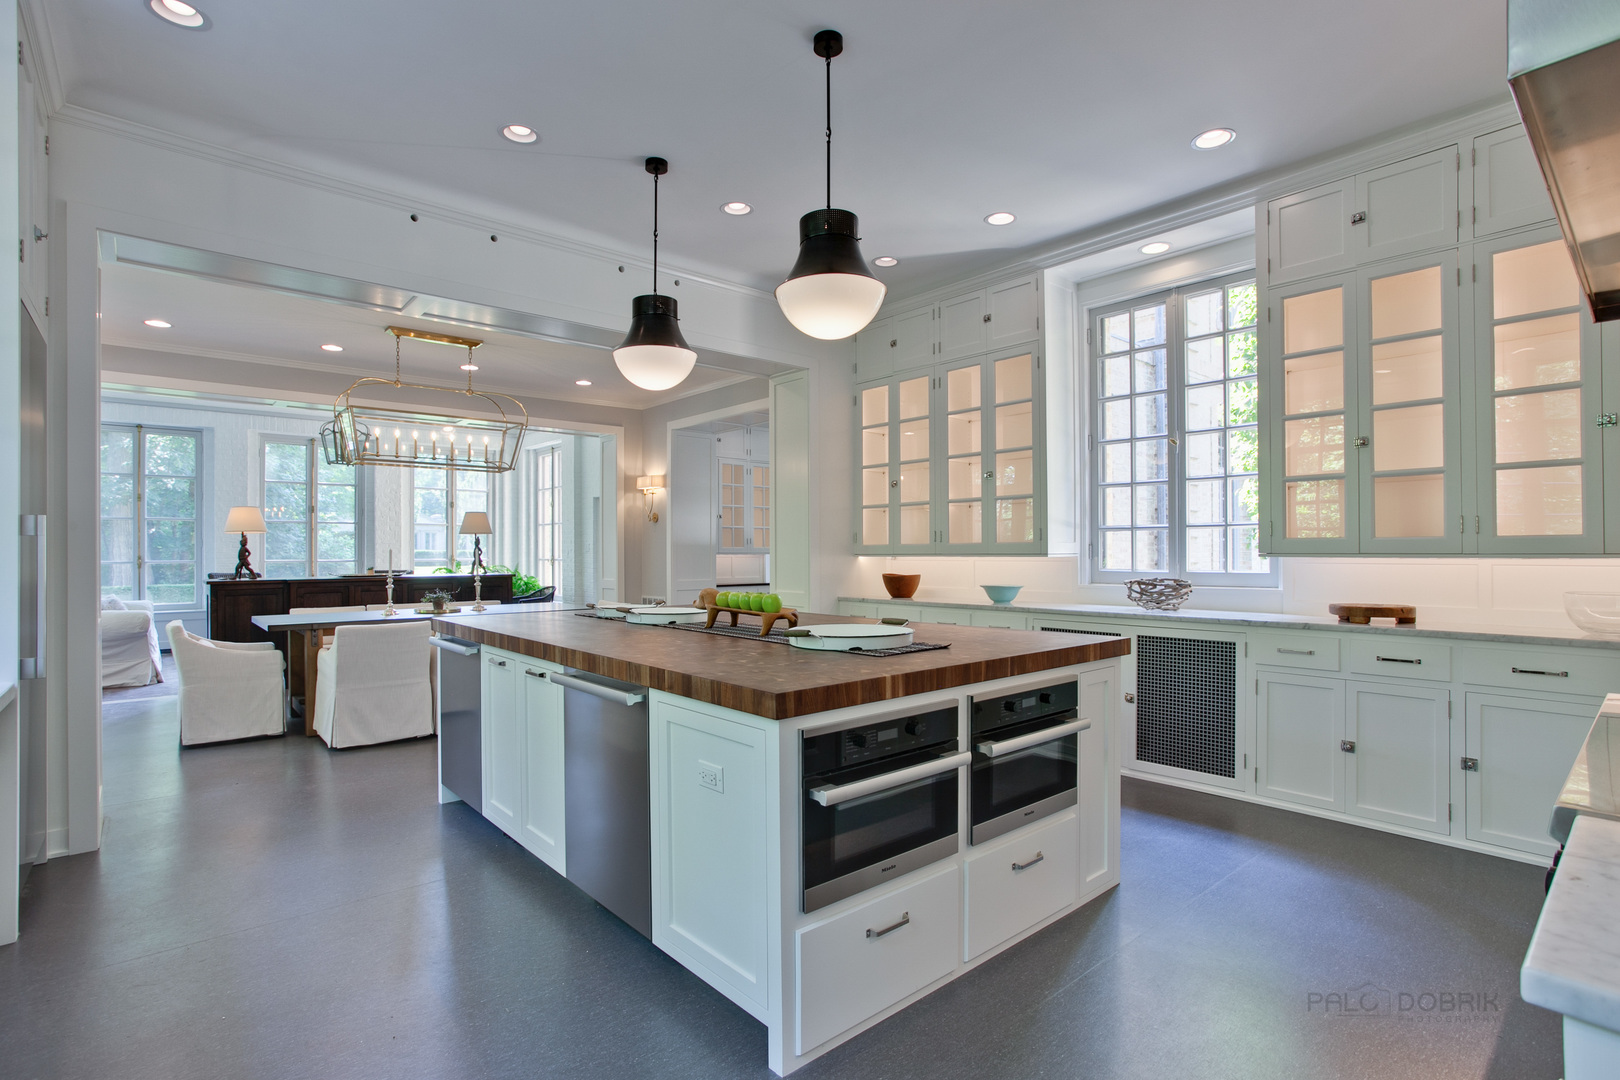 Beautiful classic white kitchen with butcher block center island in a French chateau by David Adler known as the Carolyn More Ely House. Come see the tour of this amazing historic home for sale.